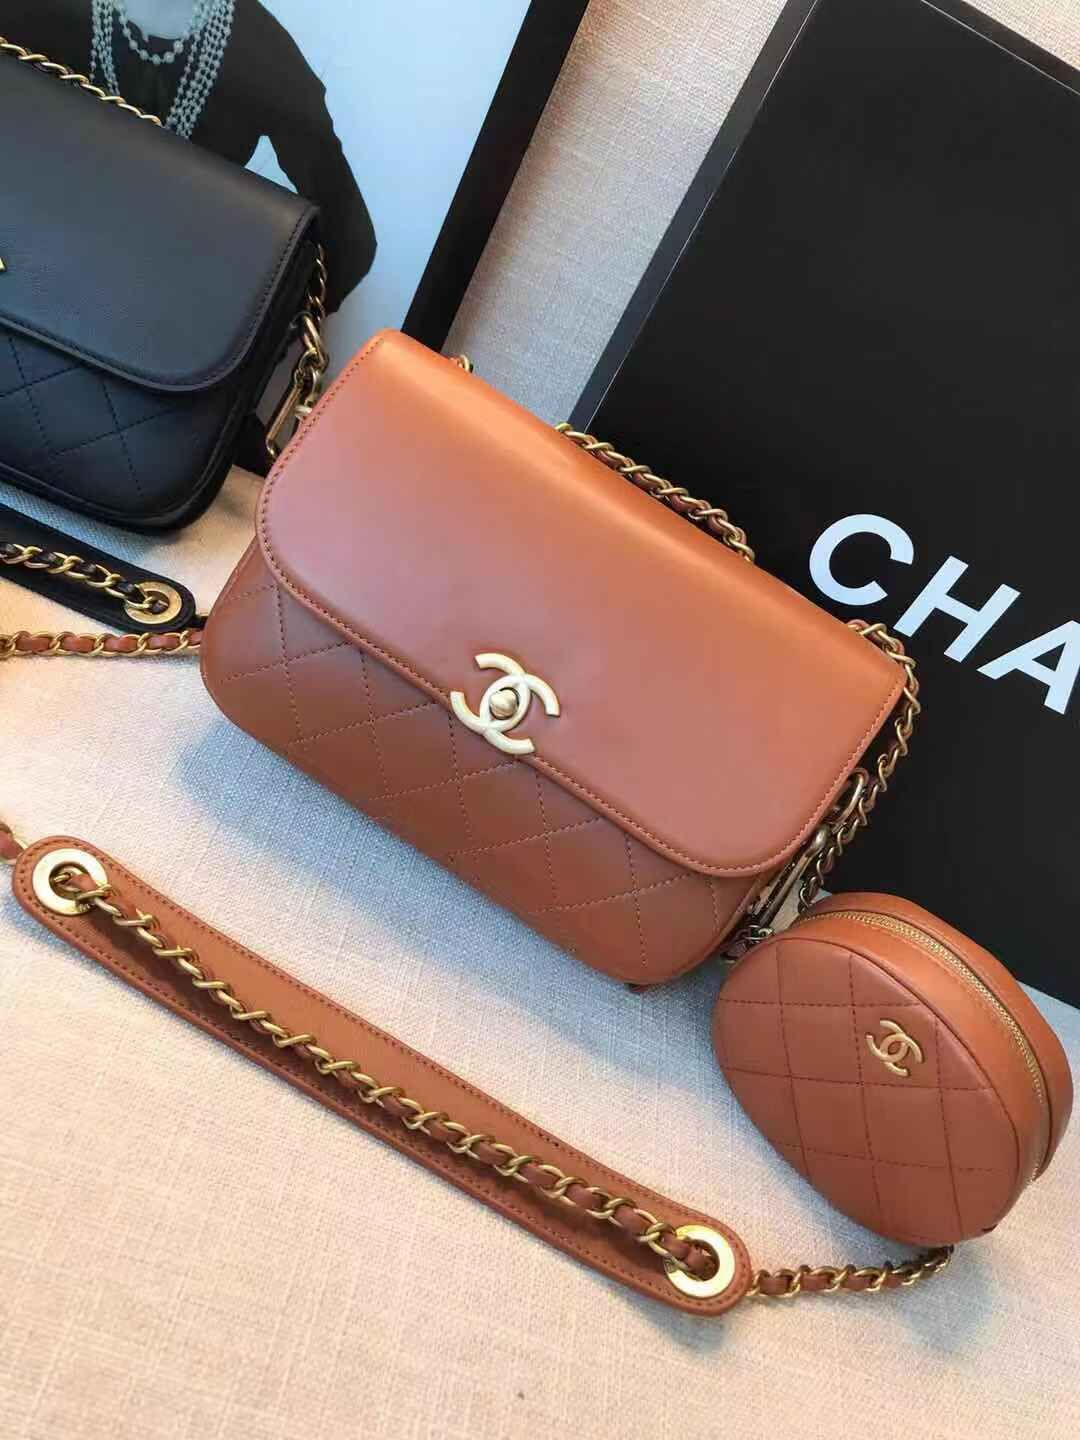 Chanel Original Leather Bag C5787 Brown